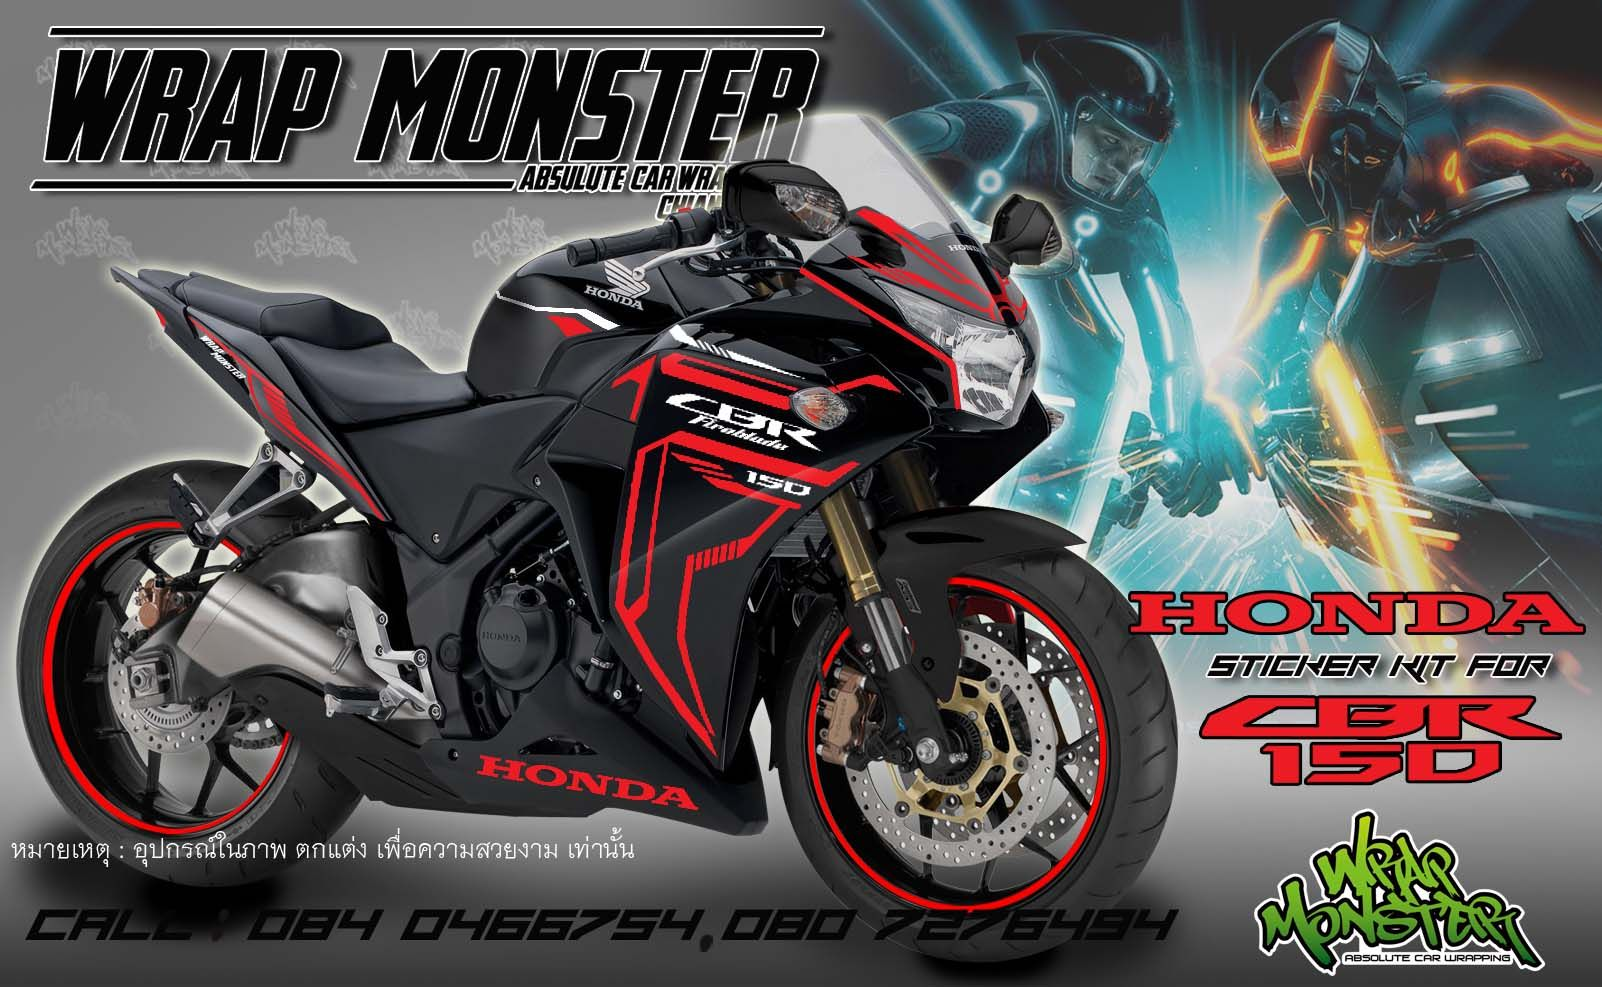 bike from technology monkey motorcycle cub motor of a wheeled auto hondas in highlight bangkok year this picks edition our honda motors news show super s three the